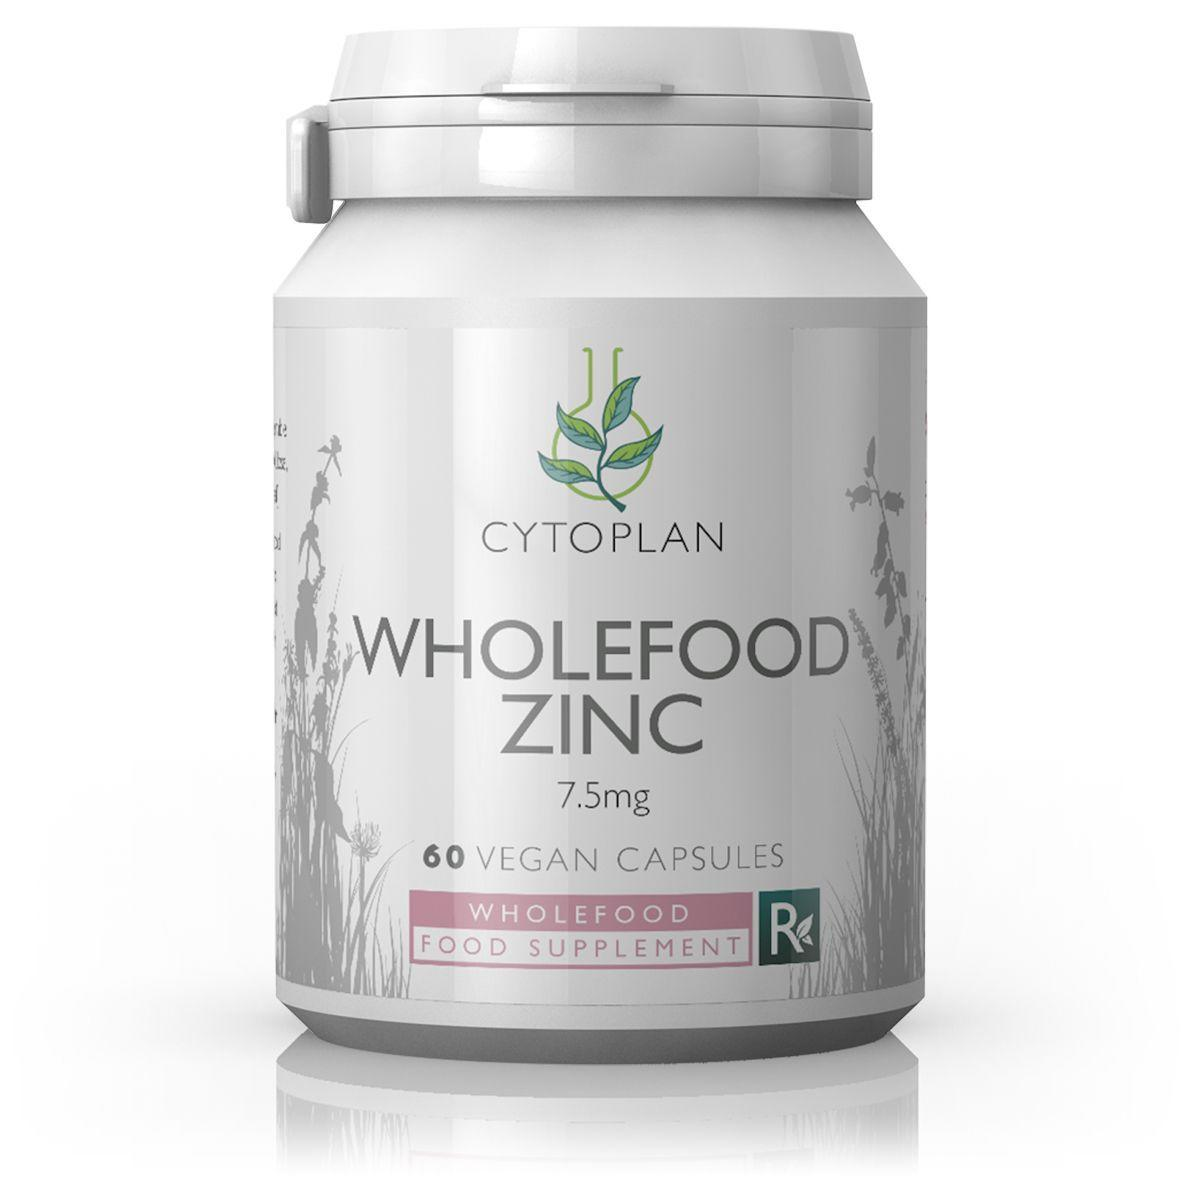 Cytoplan Wholefood Zinc 60 caps